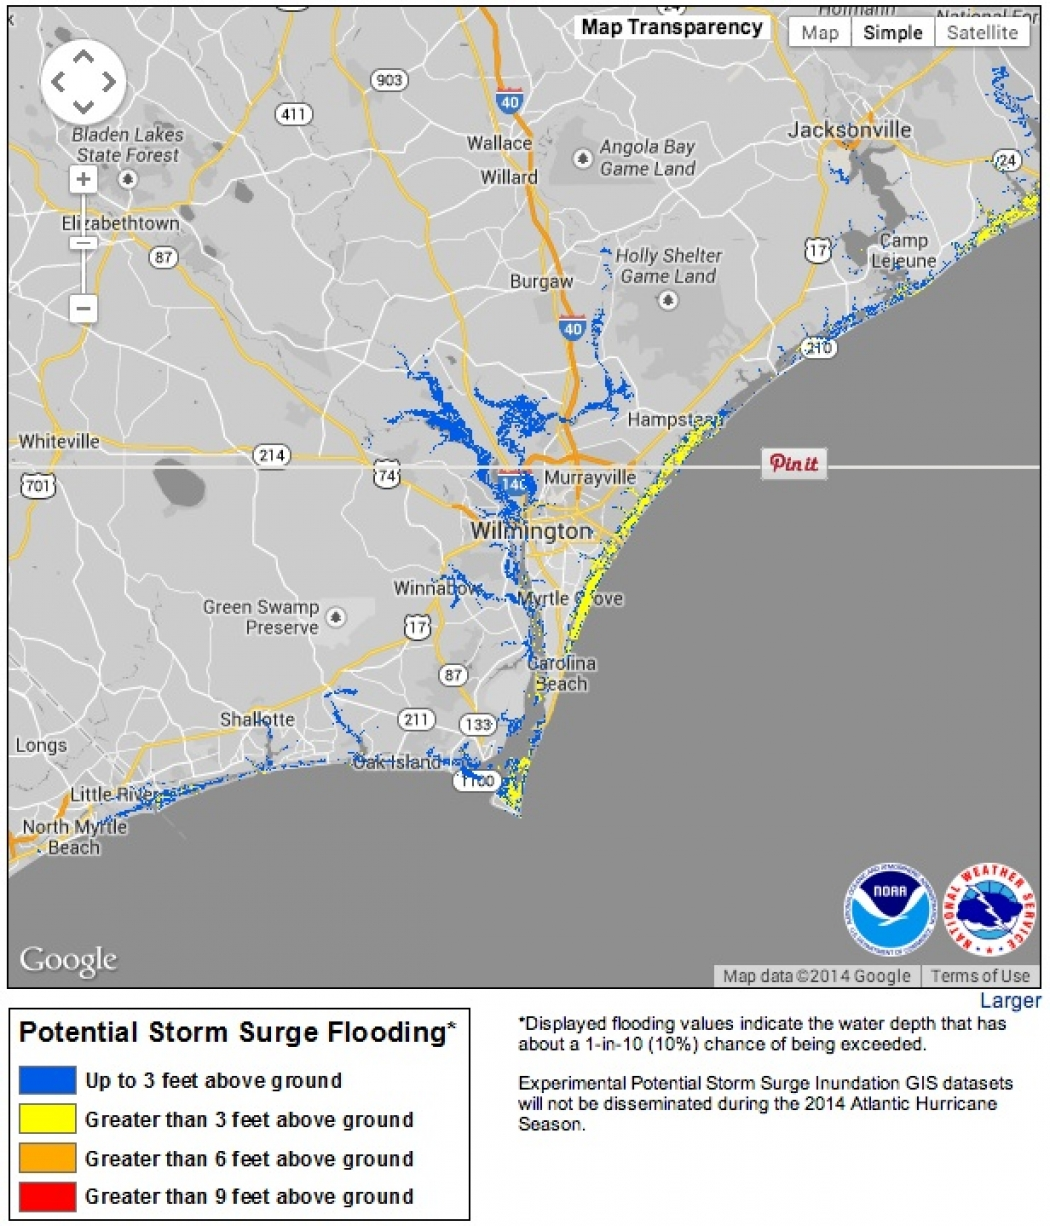 New Storm Surge Maps Debut With TS Arthur | Climate Central on